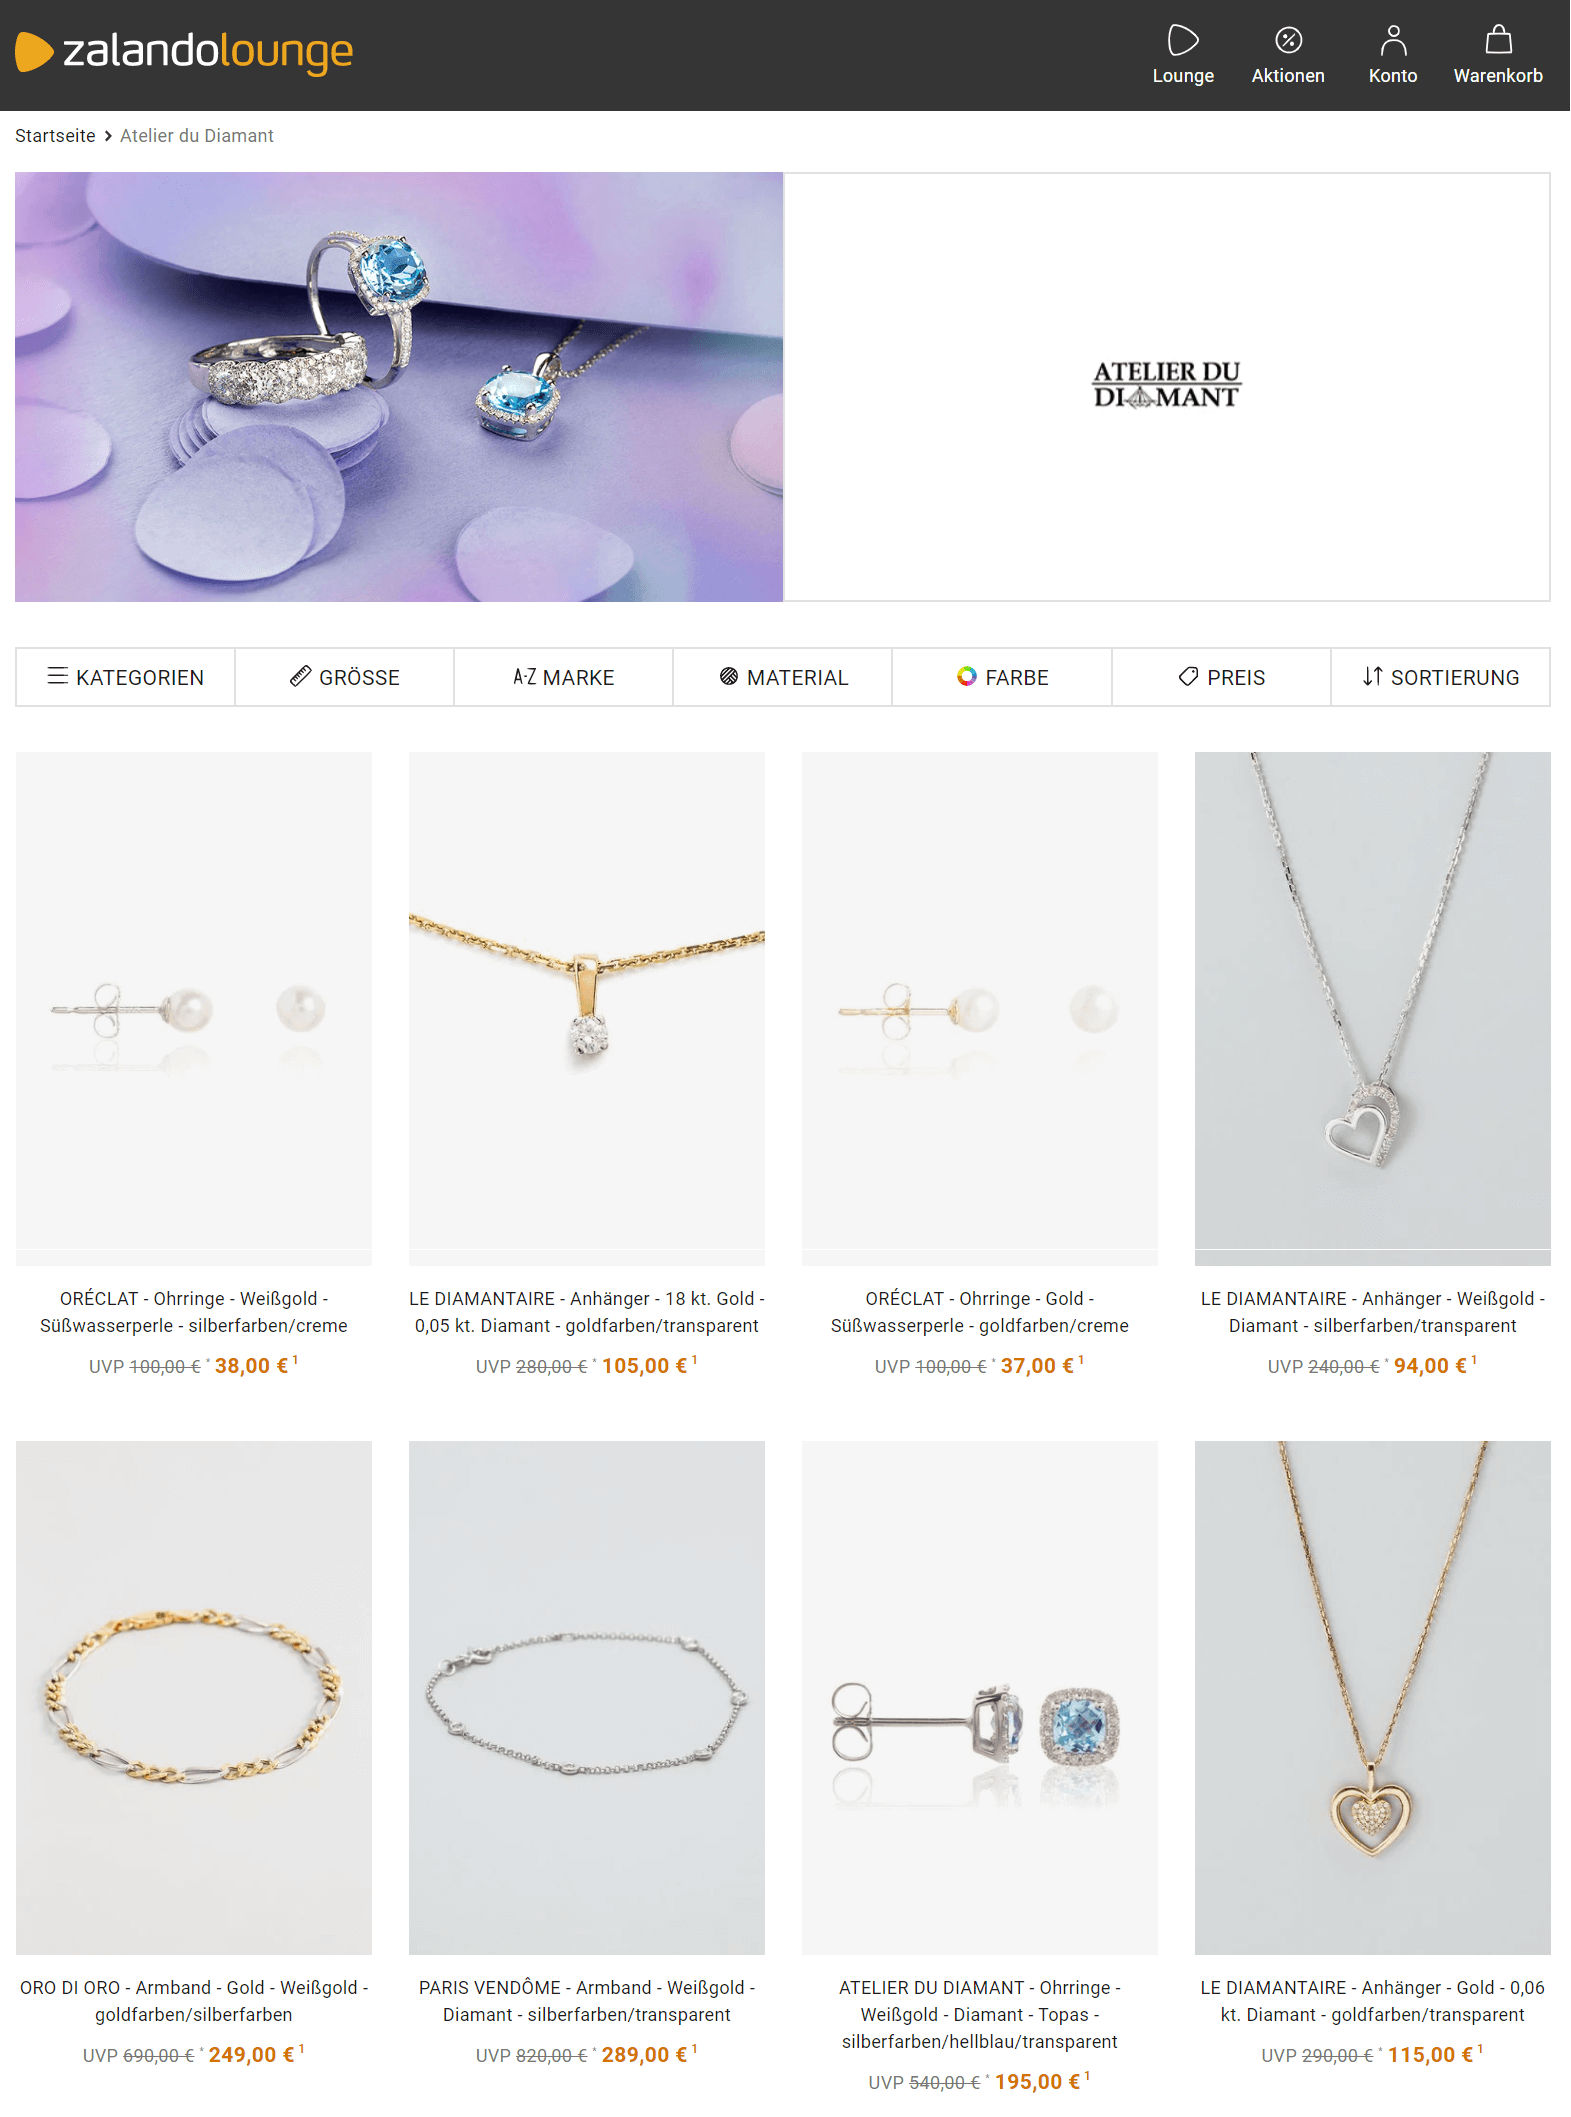 schmuck sale zalando lounge